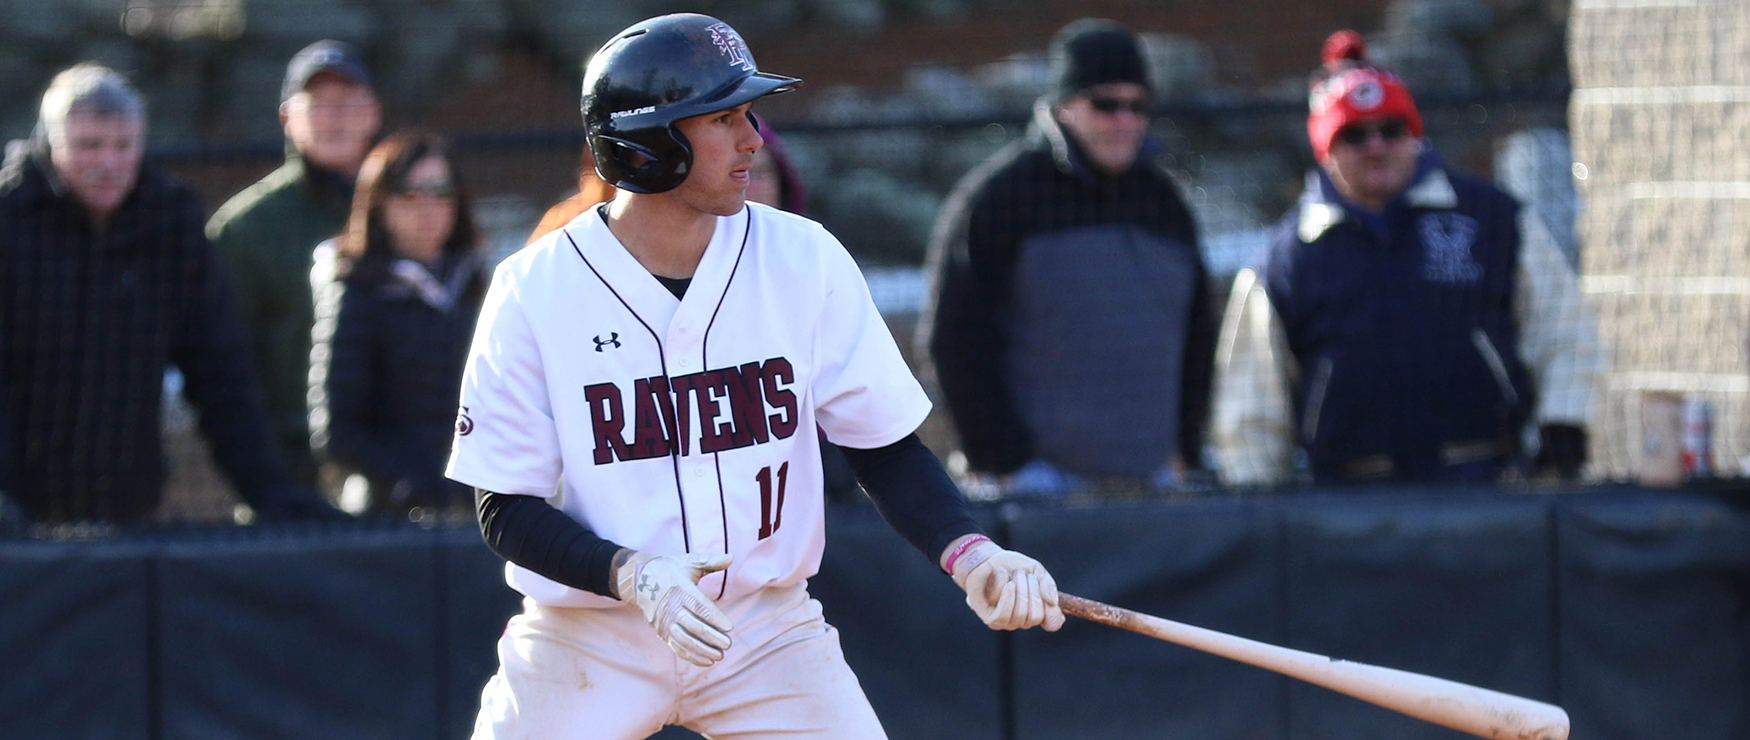 Chase, Boria, Bats Lead Baseball in 15-3 Romp at Saint Anselm